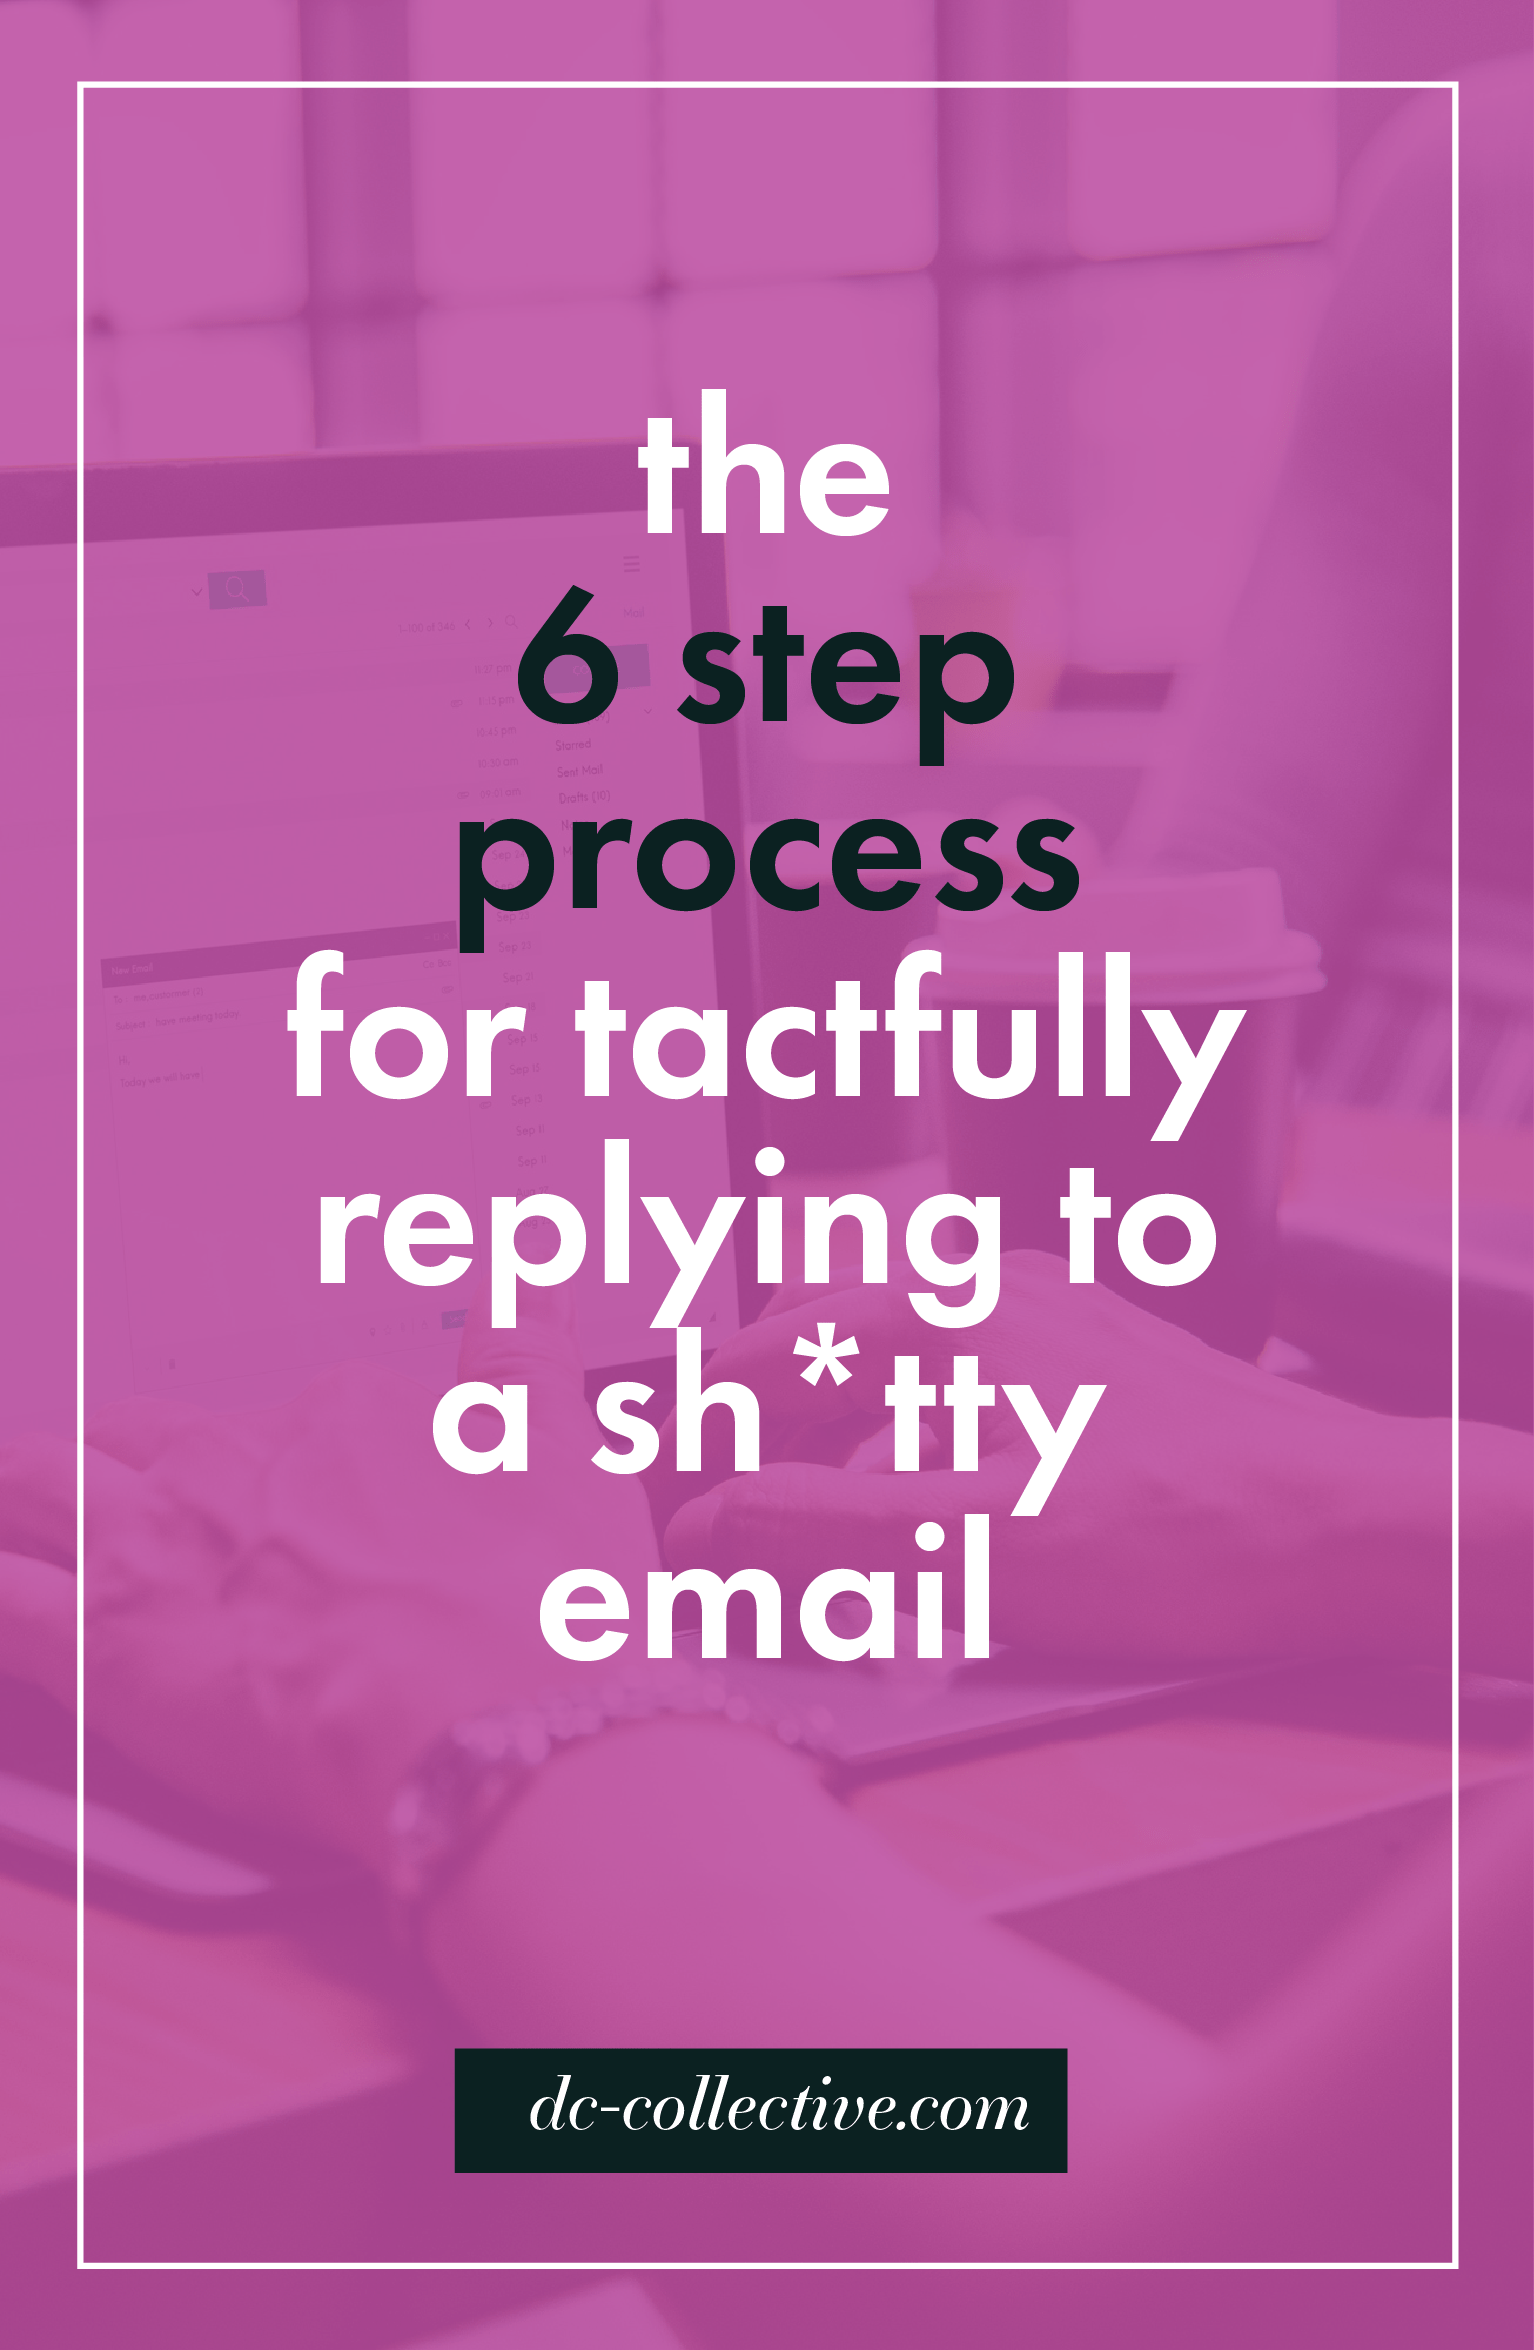 Career Advice The 6 step process for tactfully replying